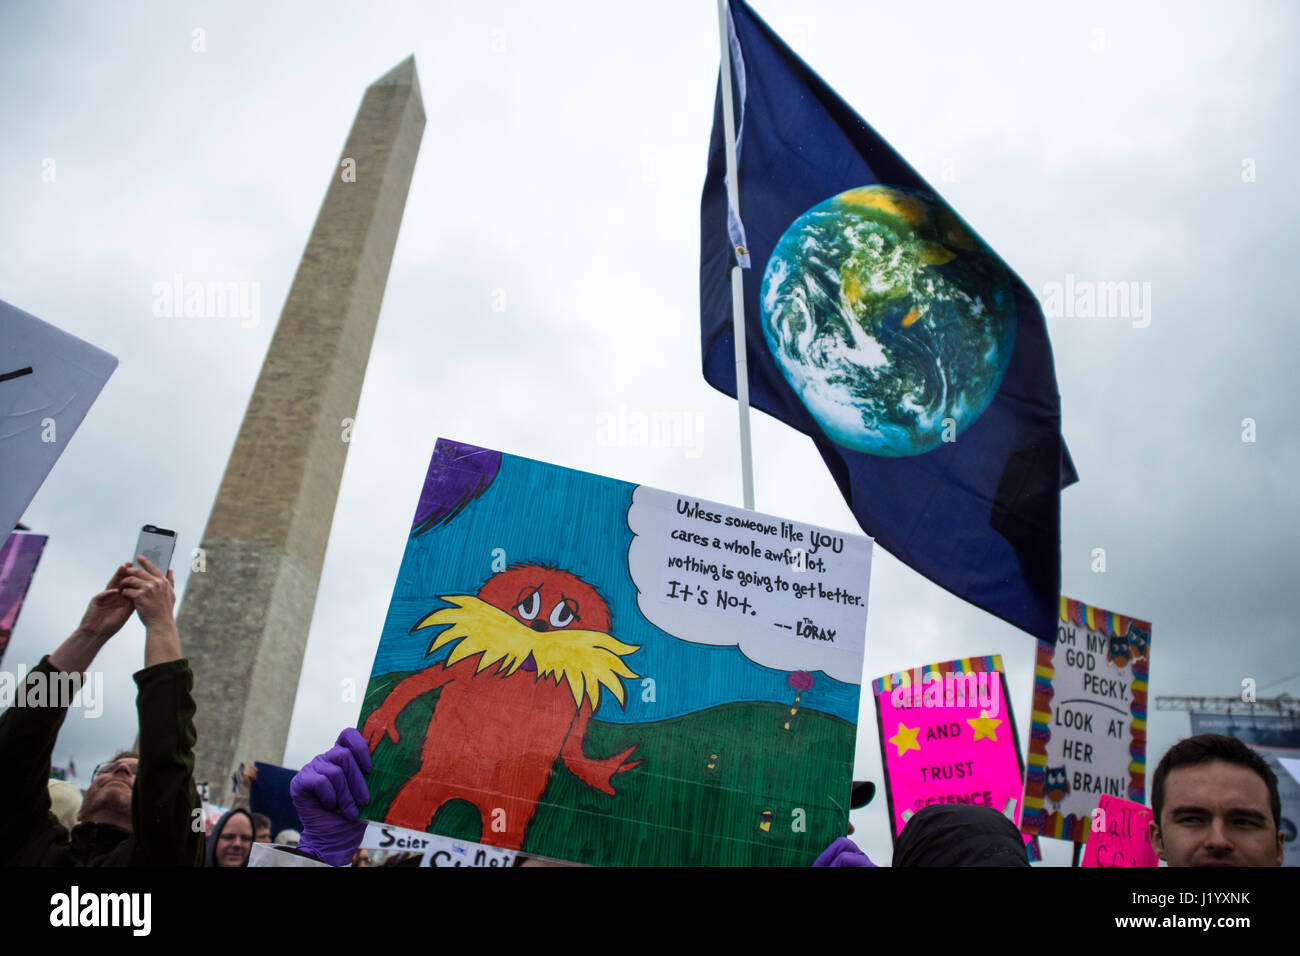 Washington, DC, USA. 22nd April, 2017. Demonstrators gather in Washington DC on Earth Day to participate in the Stock Photo